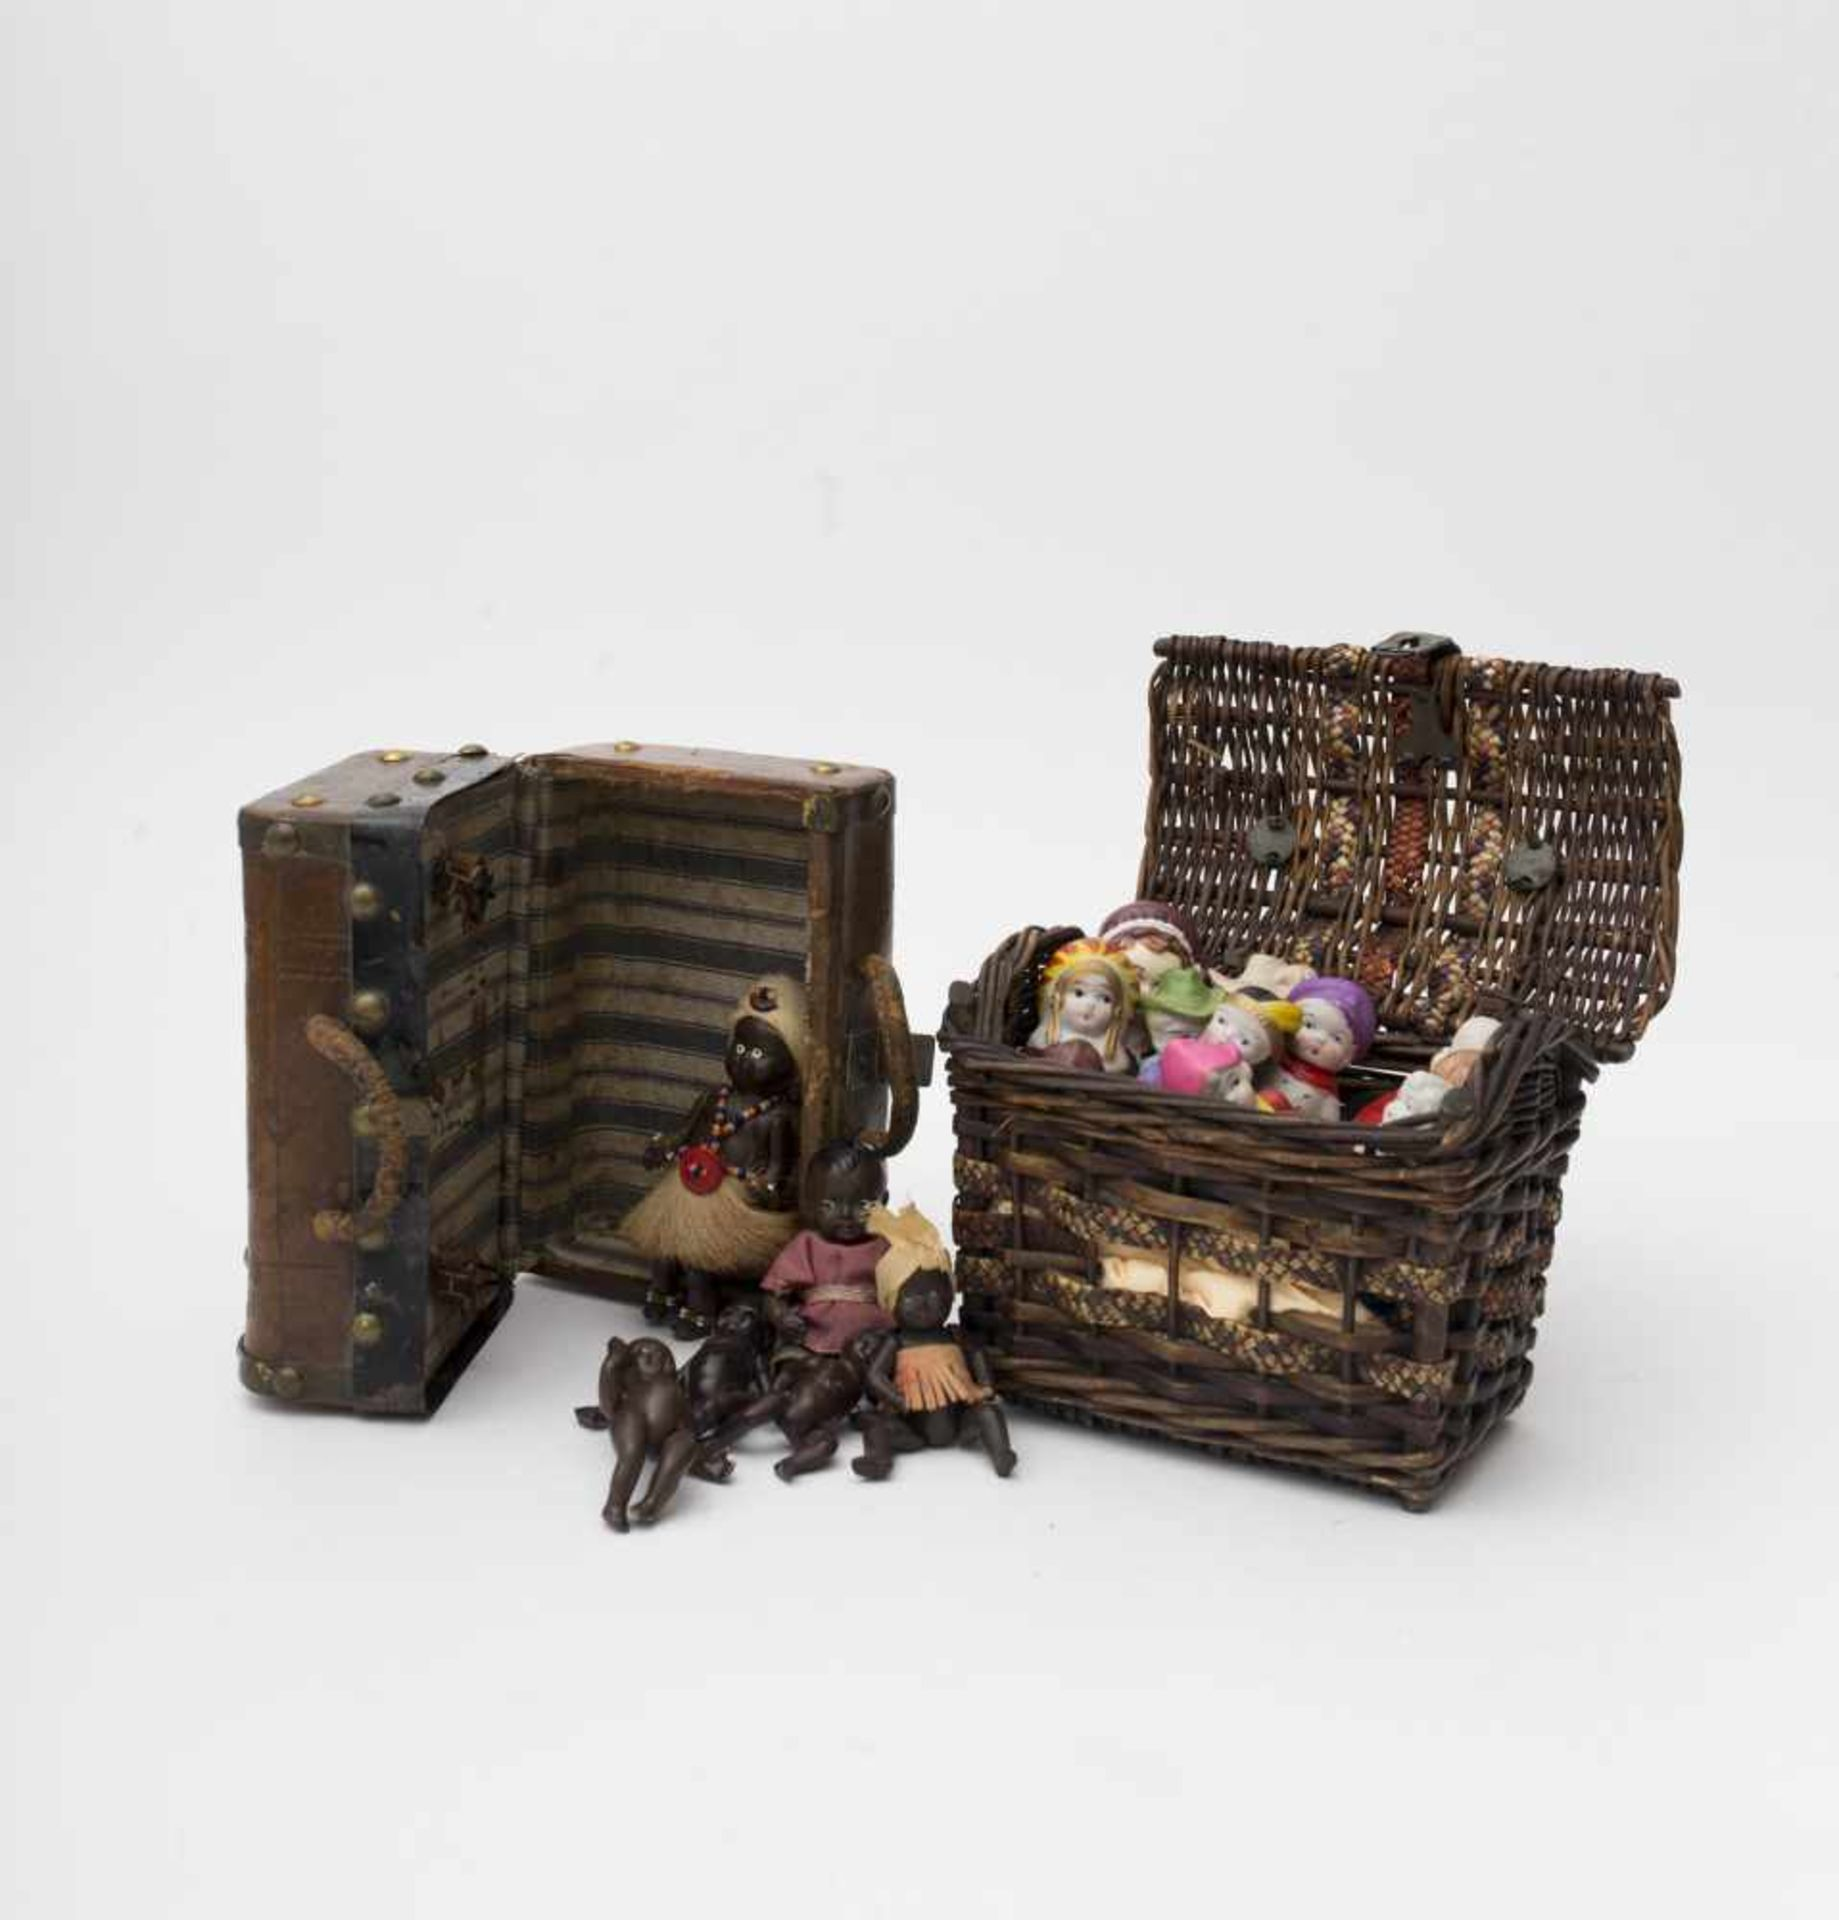 Wicker basket Containing decorative biscuit and cartoon figures (12 pieces.), and a small travel